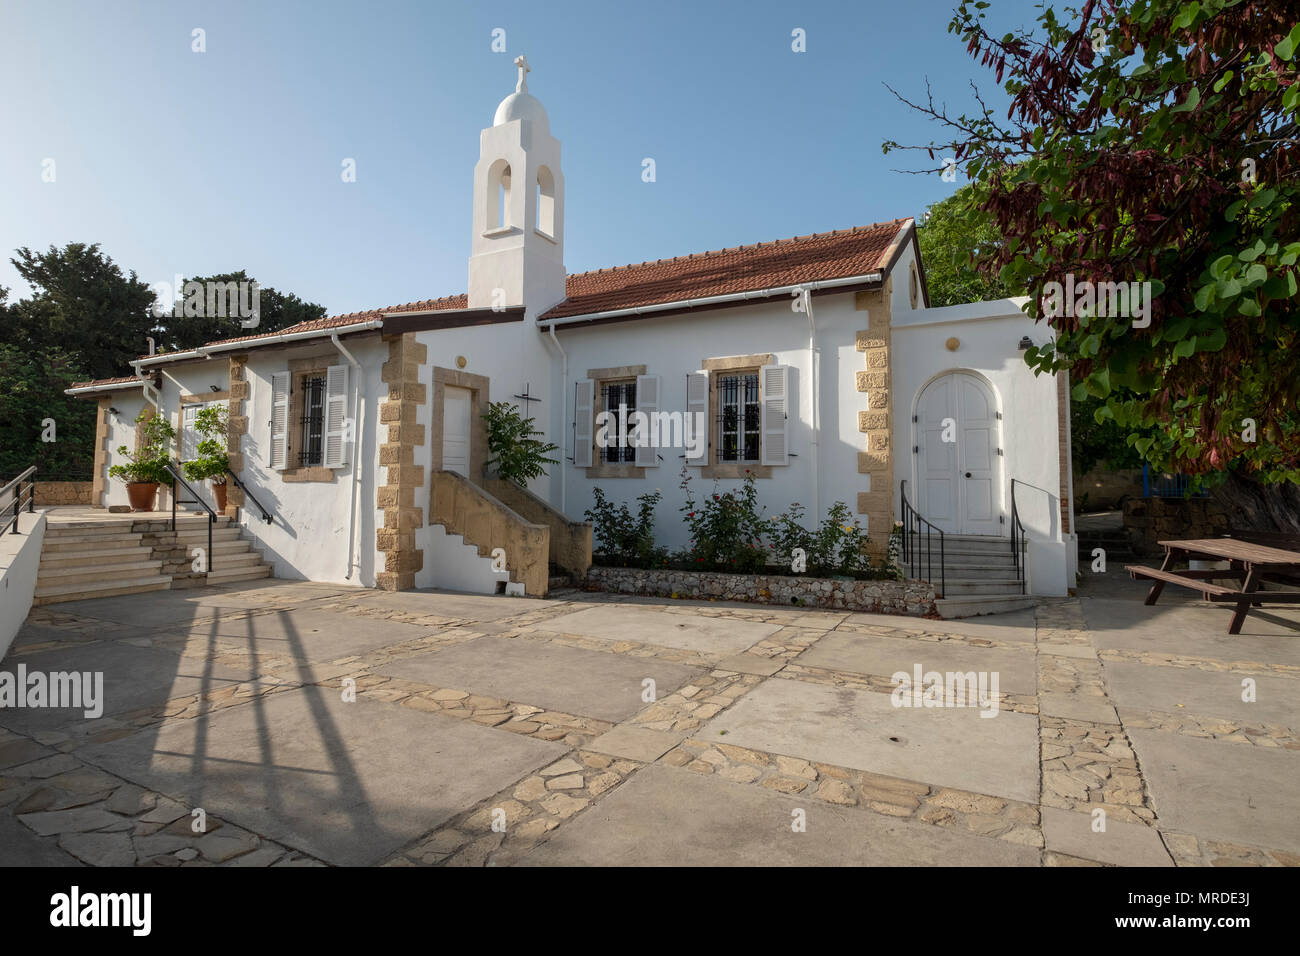 The Anglican Church of St Andrew in Kyrenia, Northern Cyprus - Stock Image